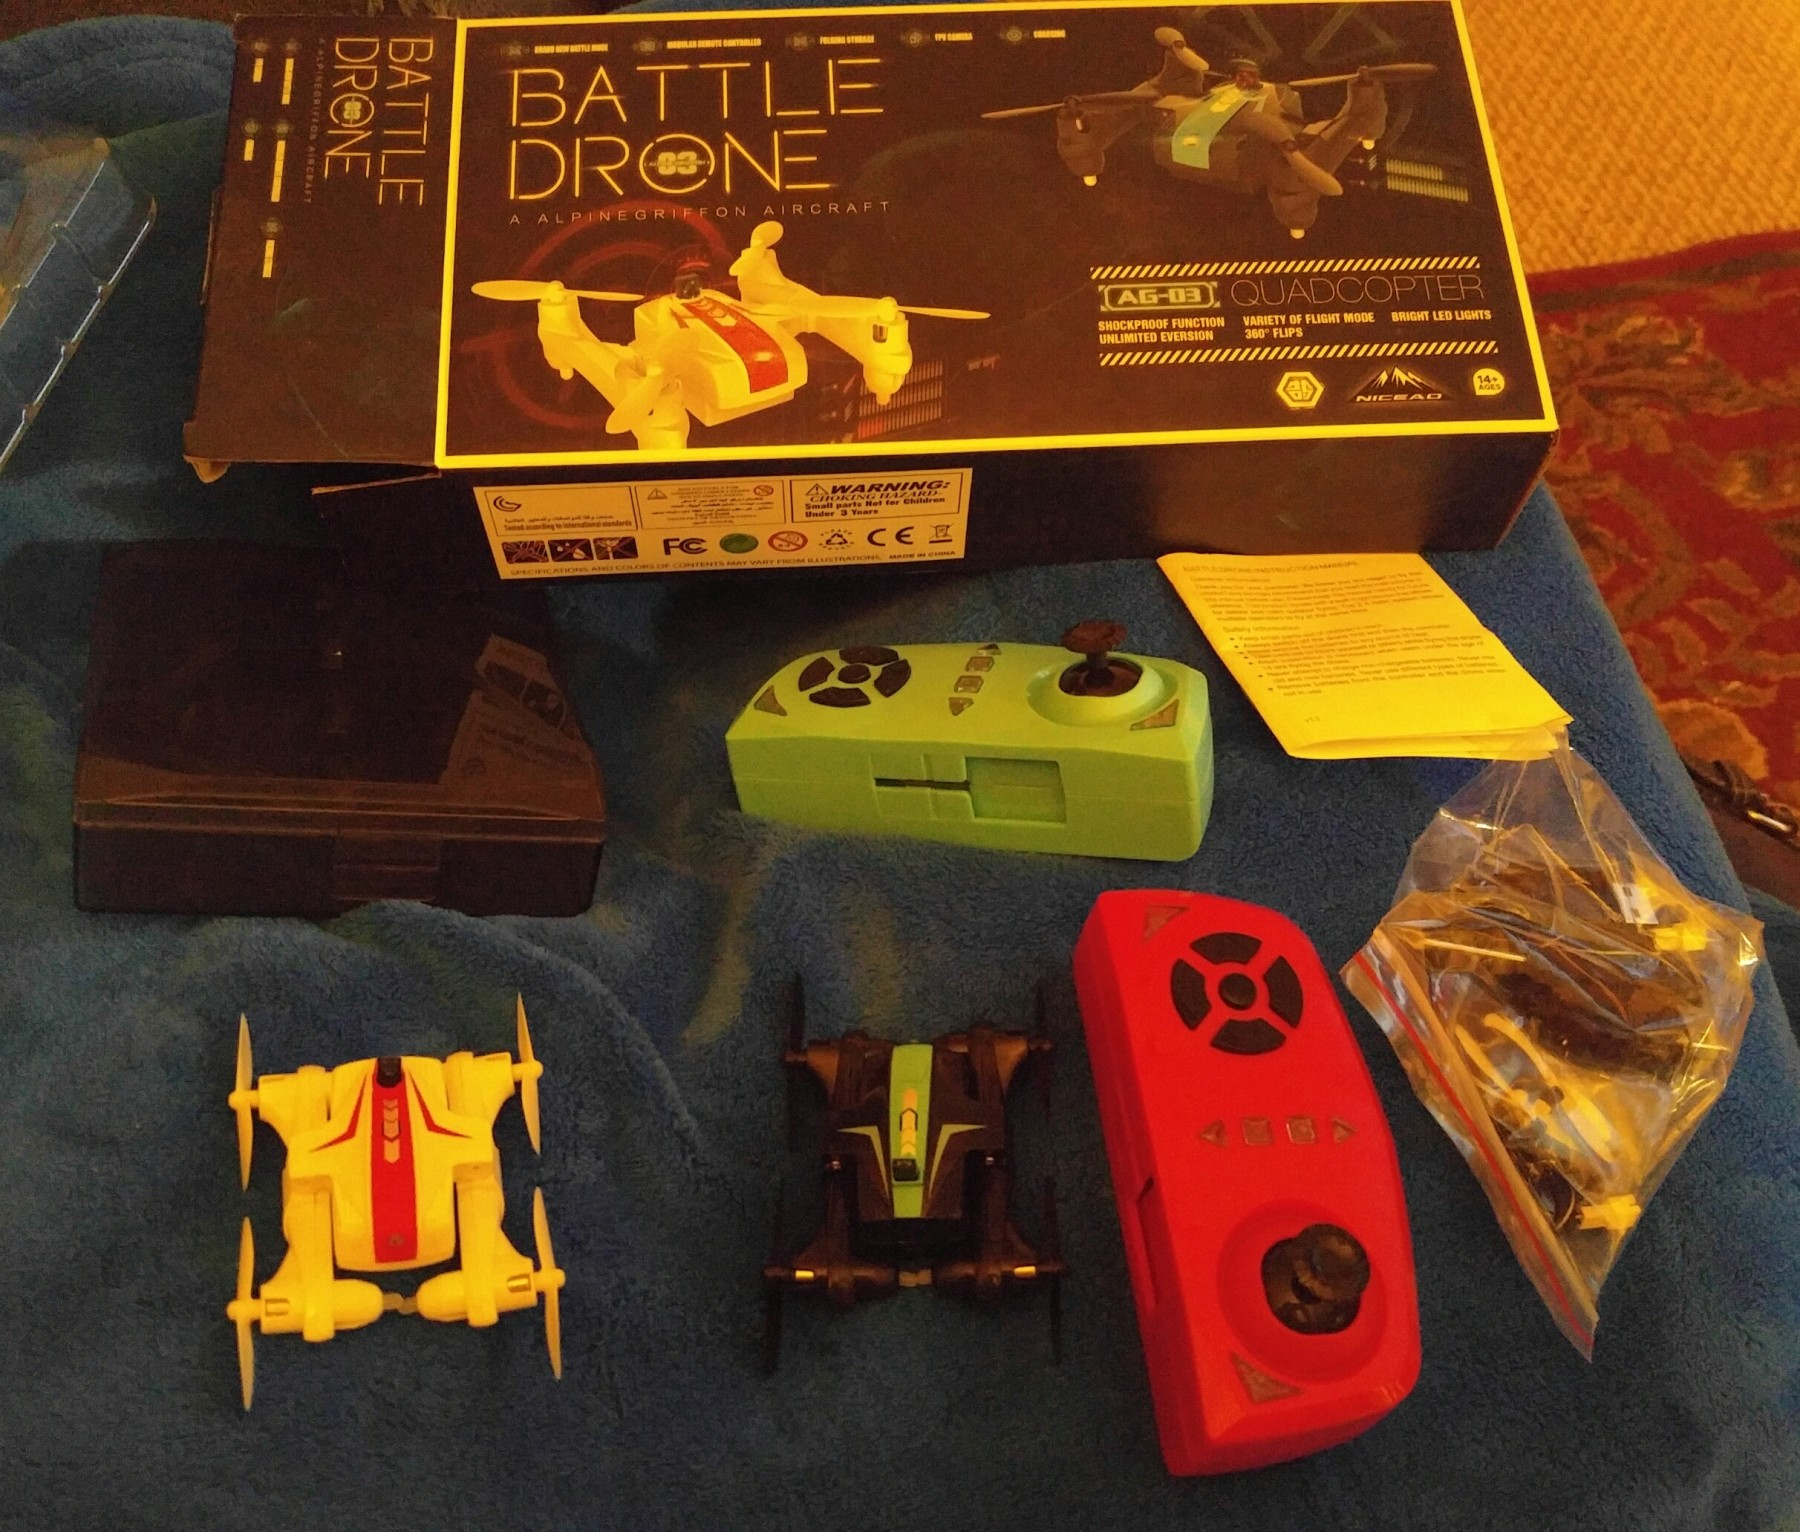 Mini drone wars battle drones